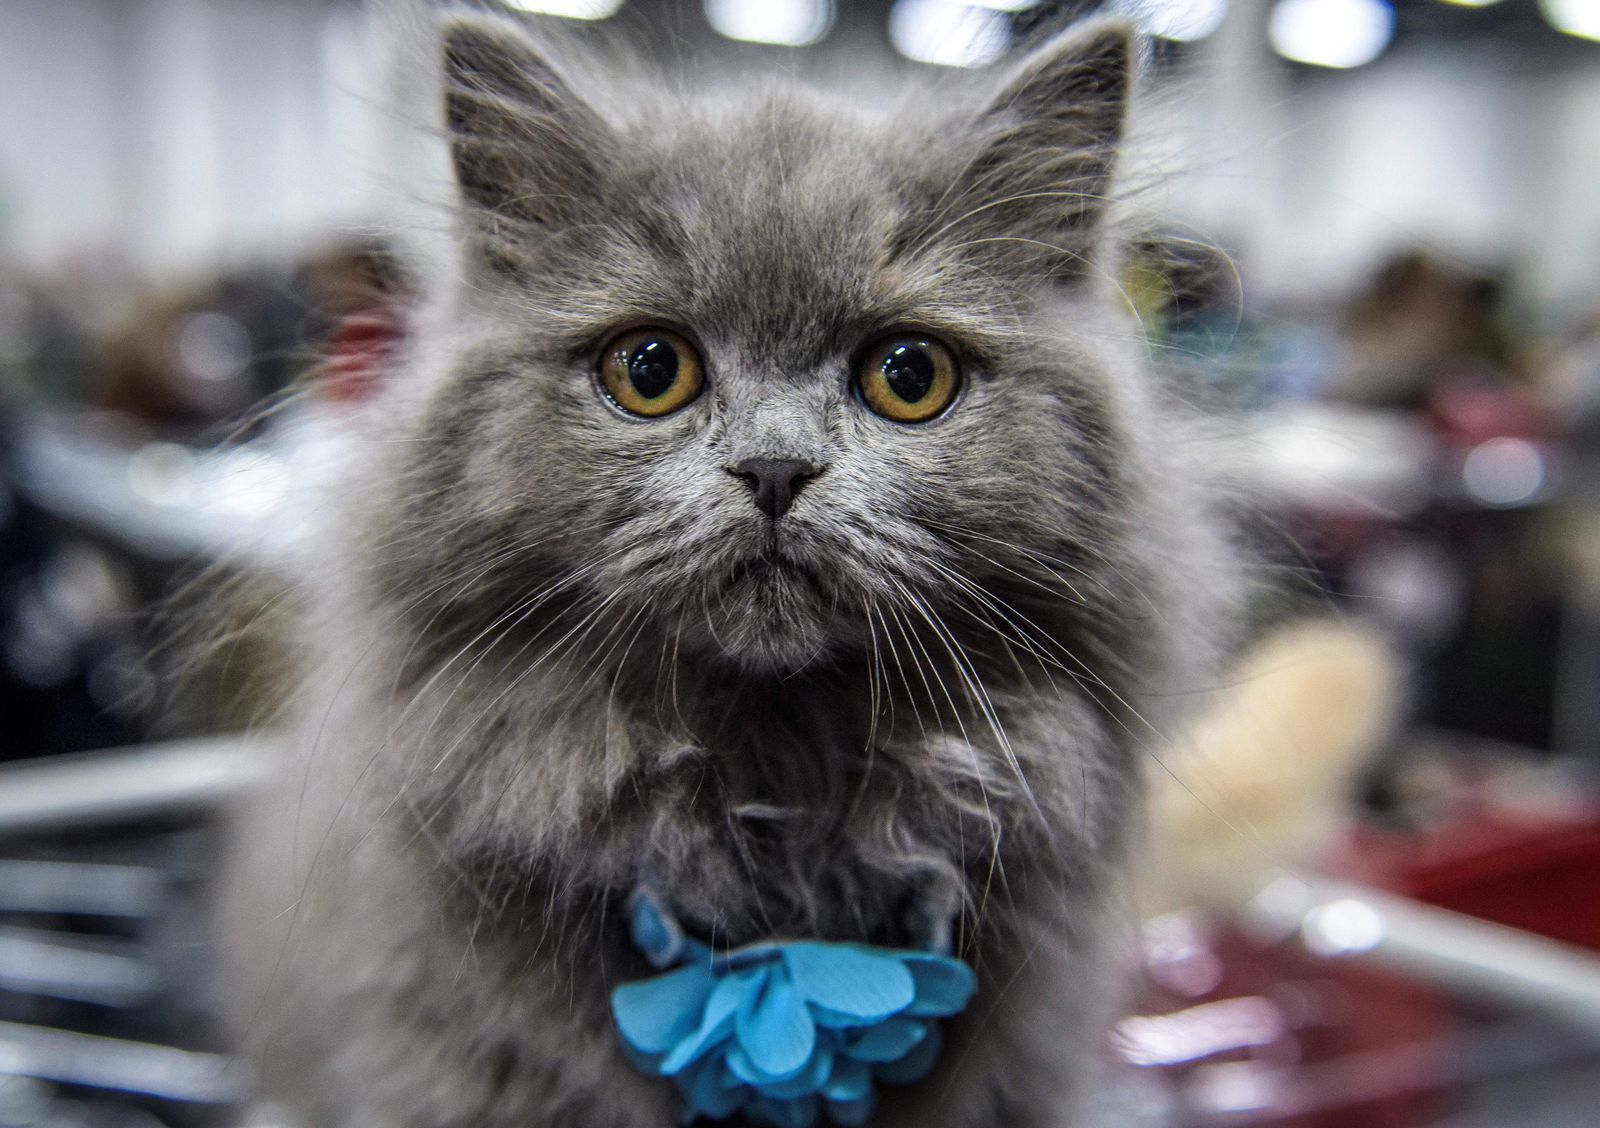 Thinking About Adopting a Cat? Here Are 15 Reasons Why You